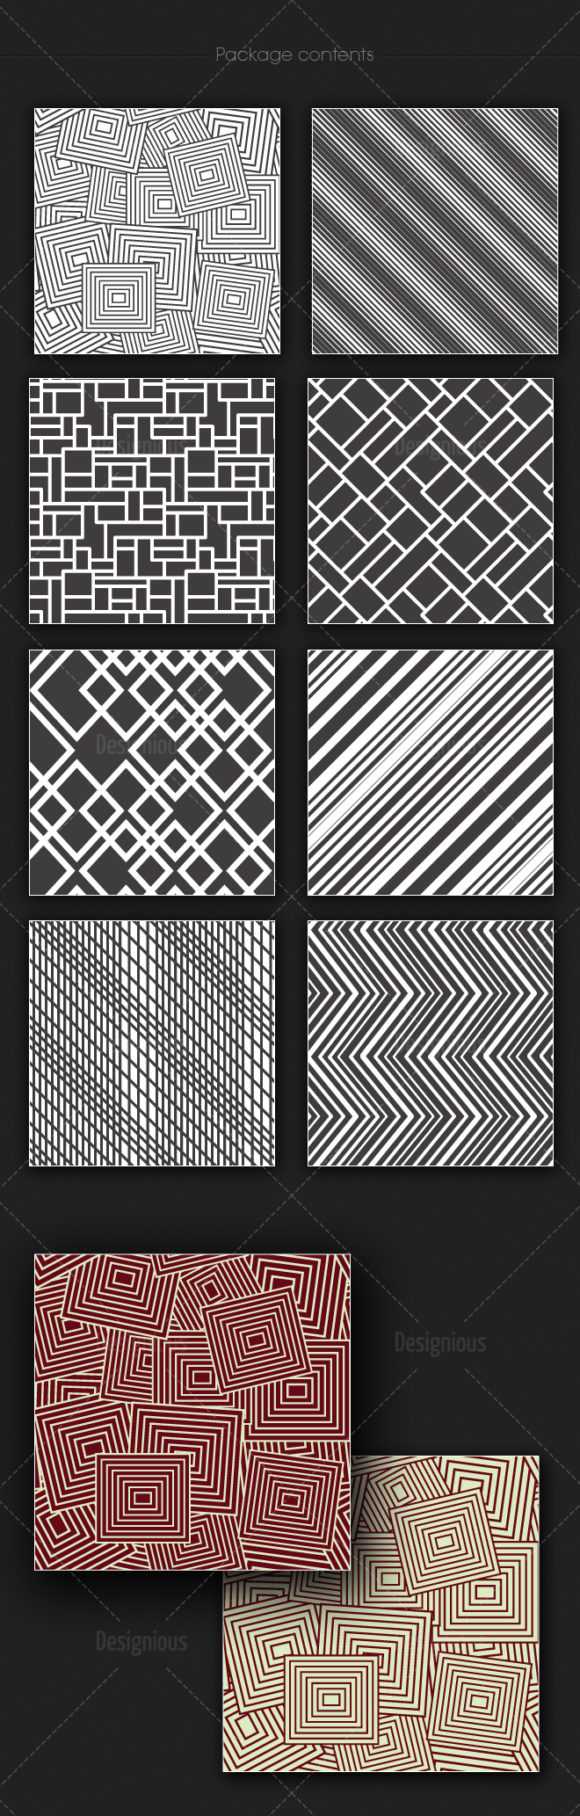 Seamless Patterns Vector Pack 162 products designious vector seamless 162 large